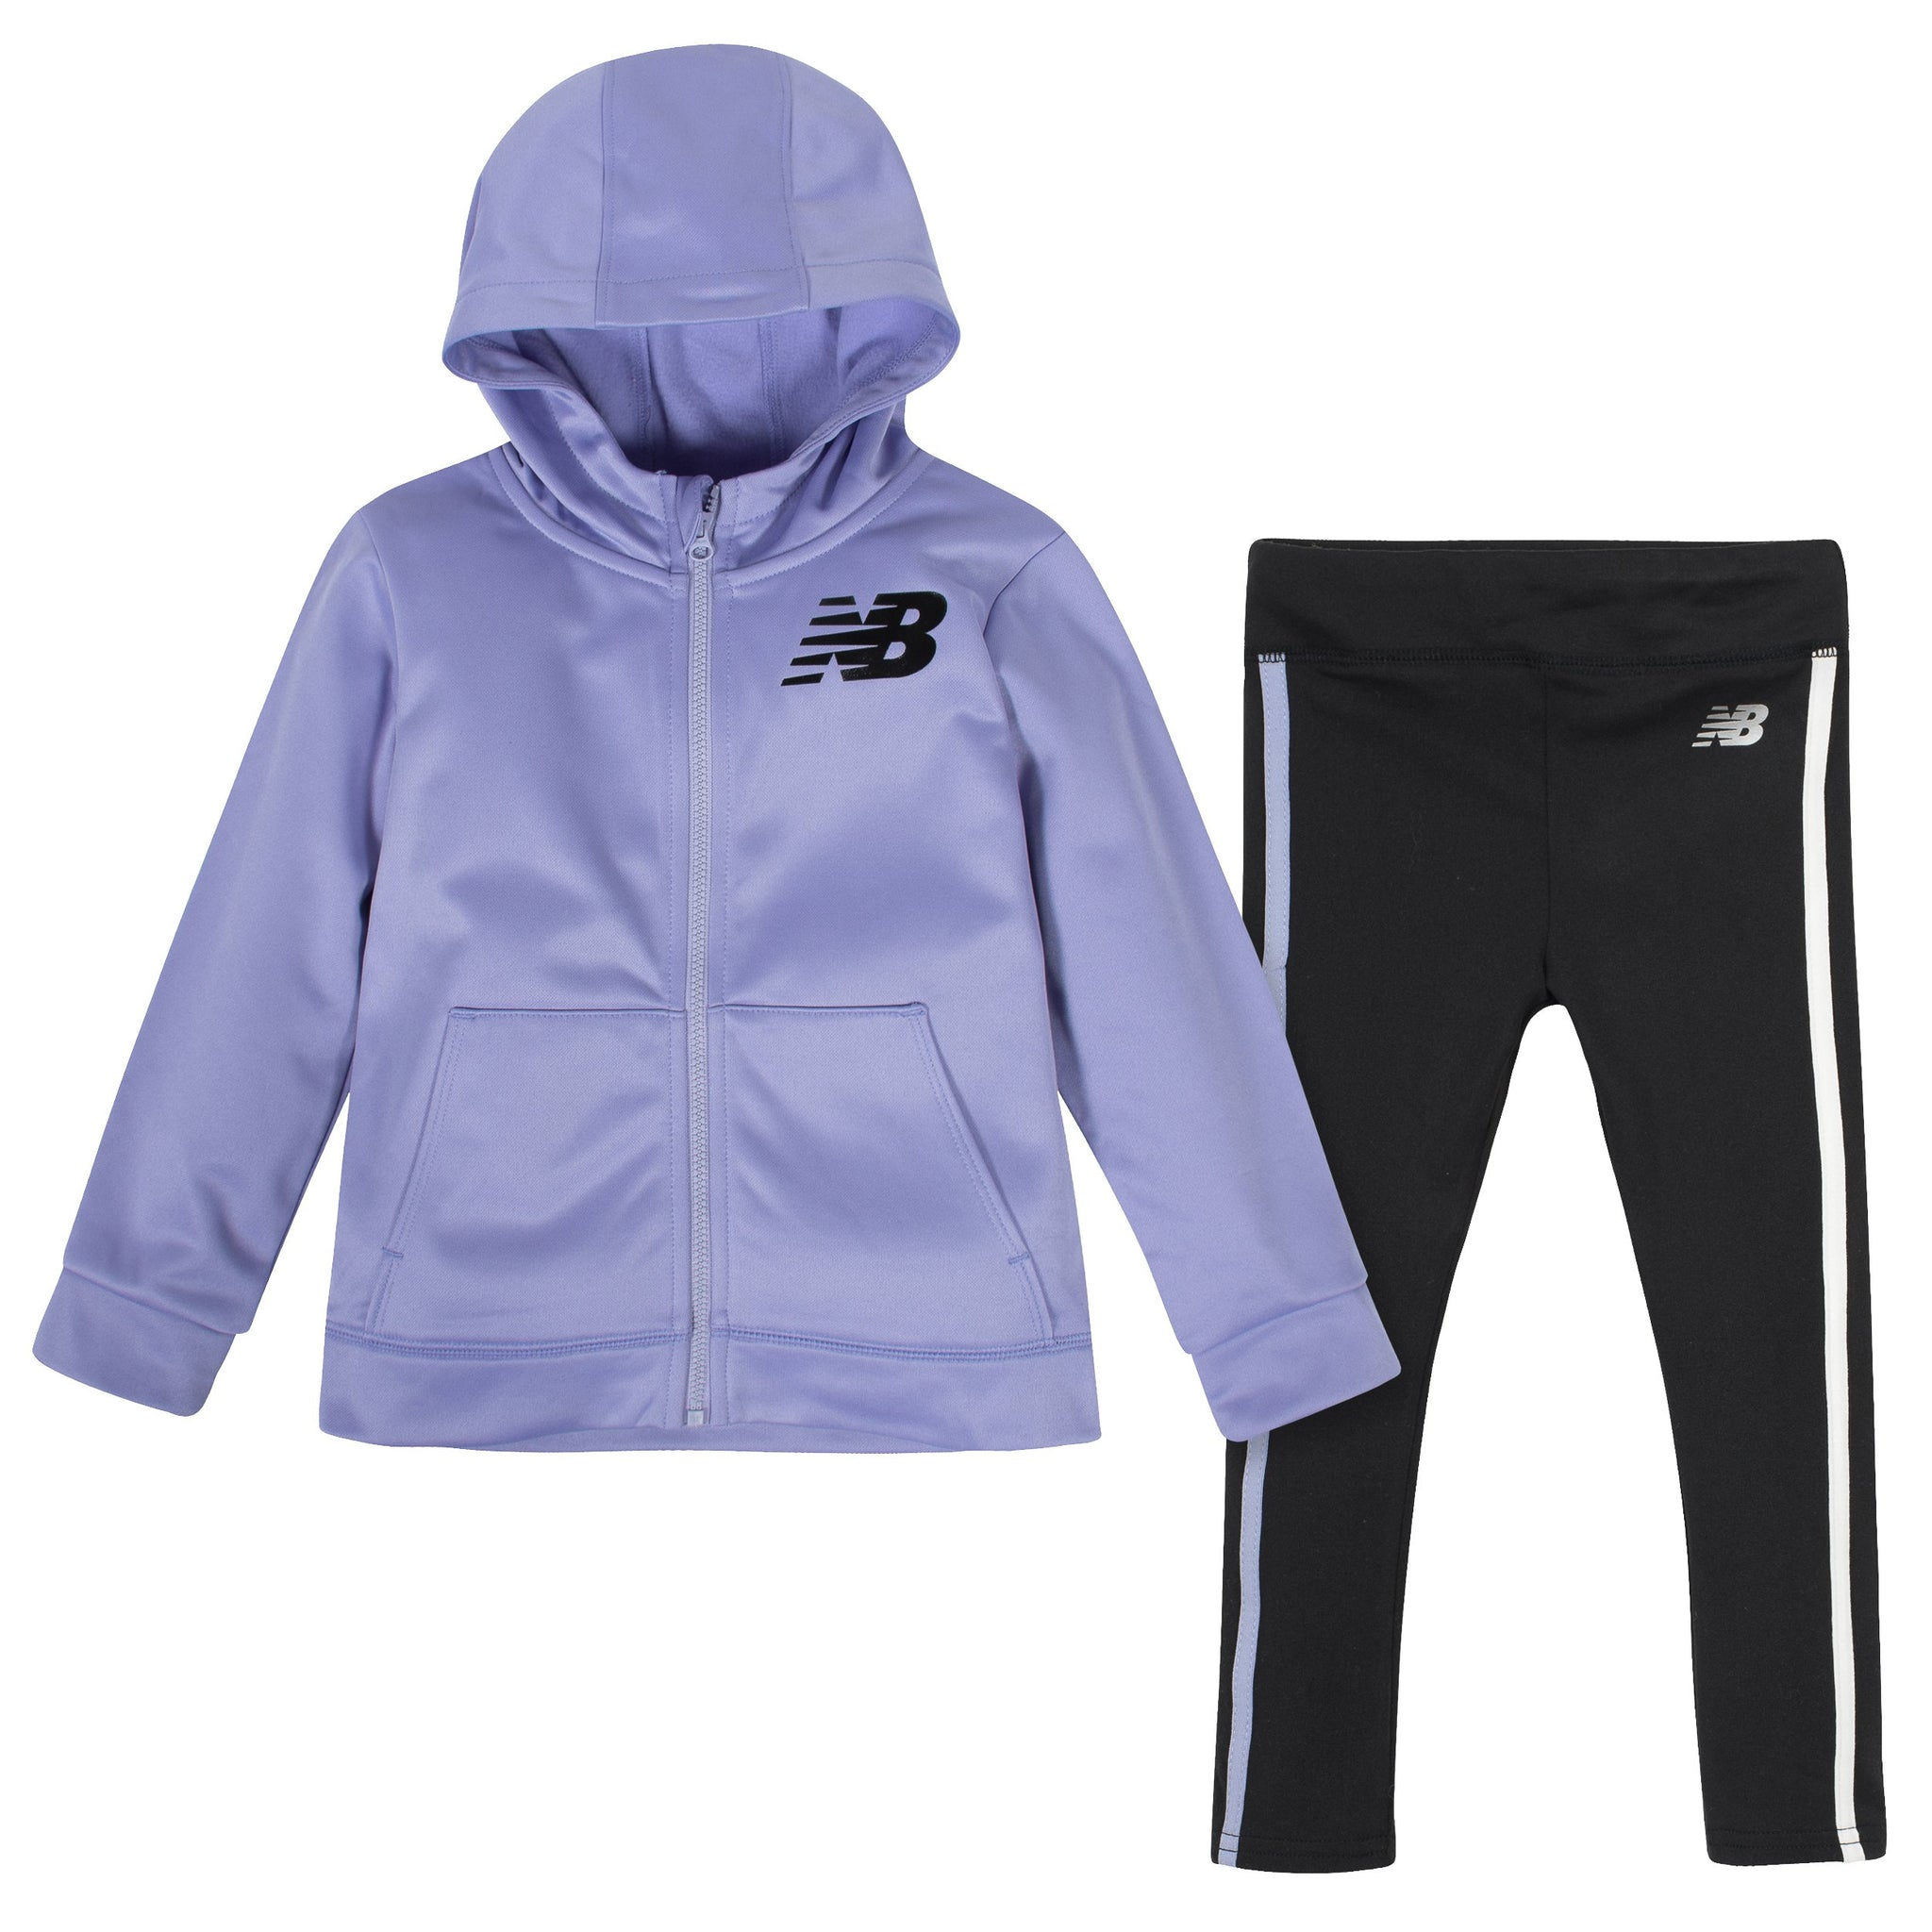 2-Piece New Balance Girls' Clear Amethyst and Black Hooded Jacket and Tight Set